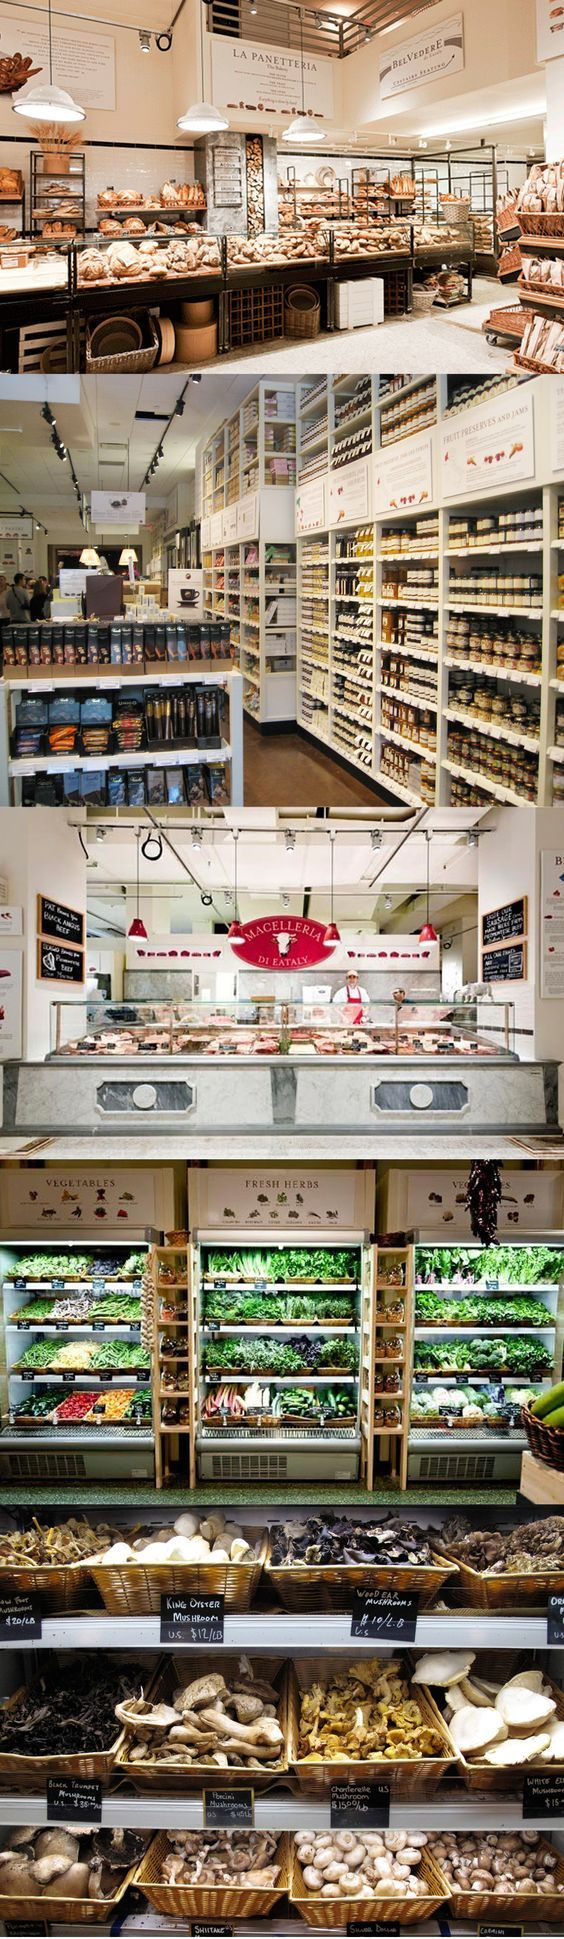 Eataly in New york City! 200 Fifth Avenue Tel: 212.229.2560: